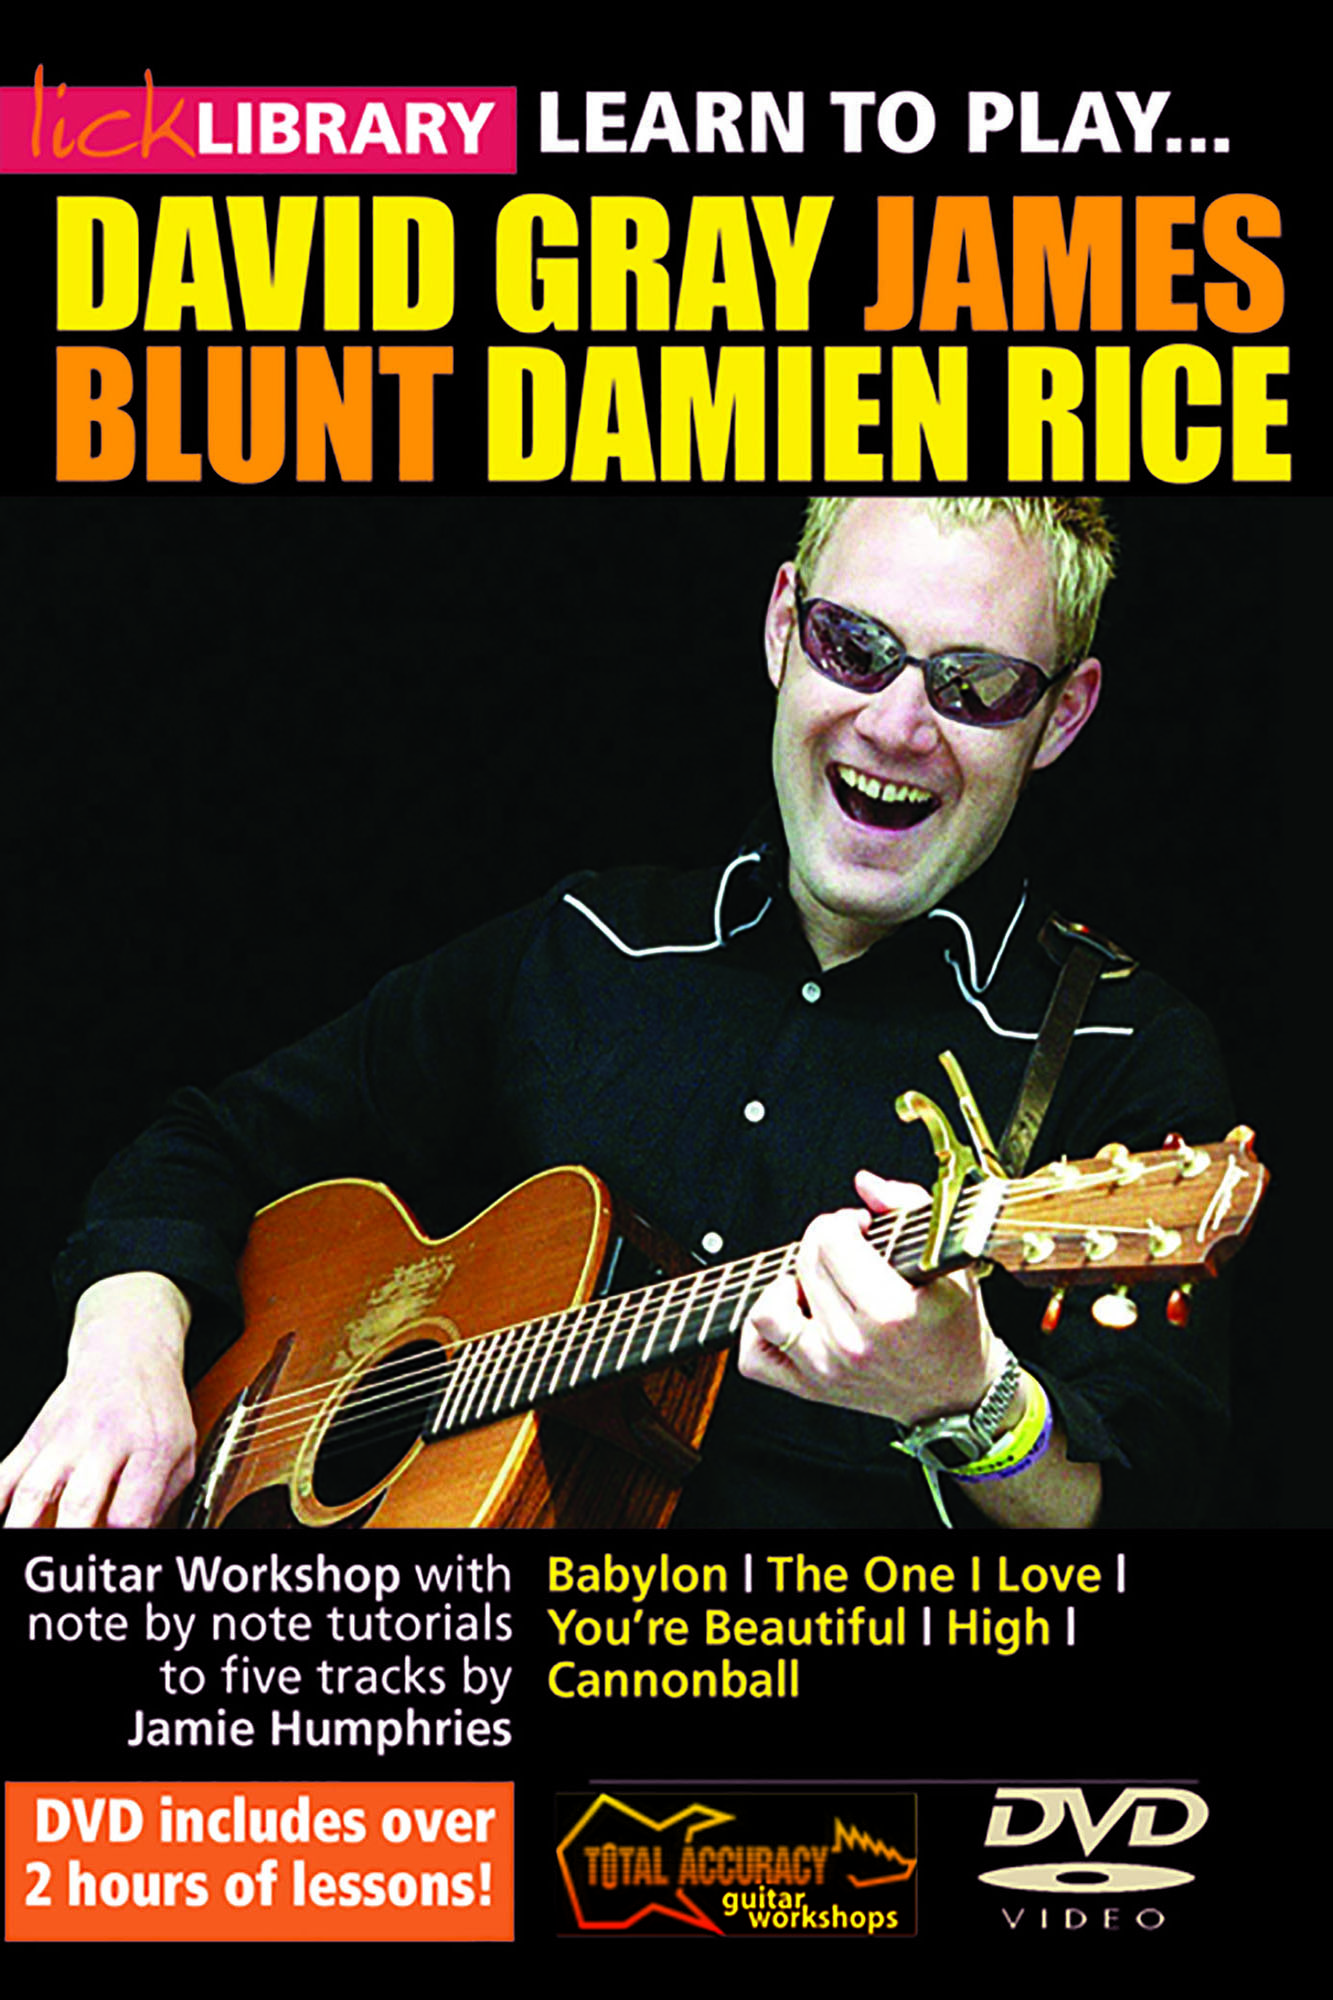 Learn To Play David Gray, James Blunt & Damien Rice